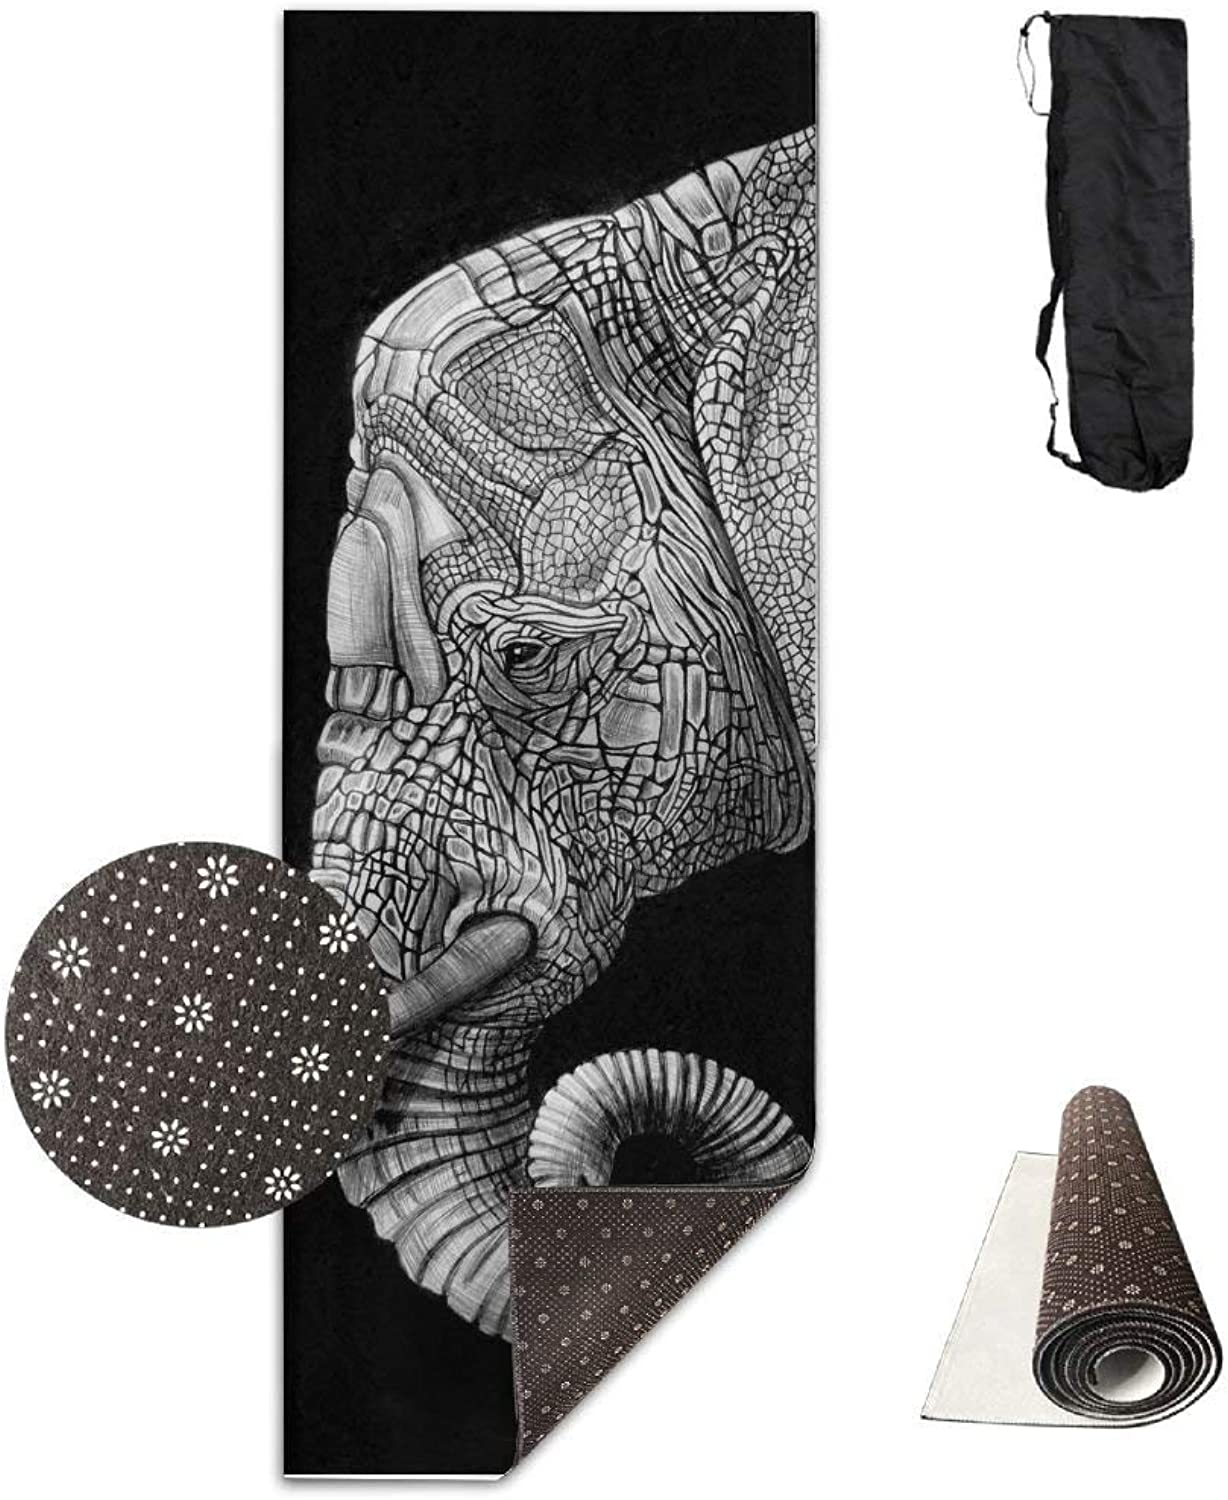 Yoga Mat Non Slip Elephant Art Printed 24 X 71 Inches Premium for Fitness Exercise Pilates with Carrying Strap